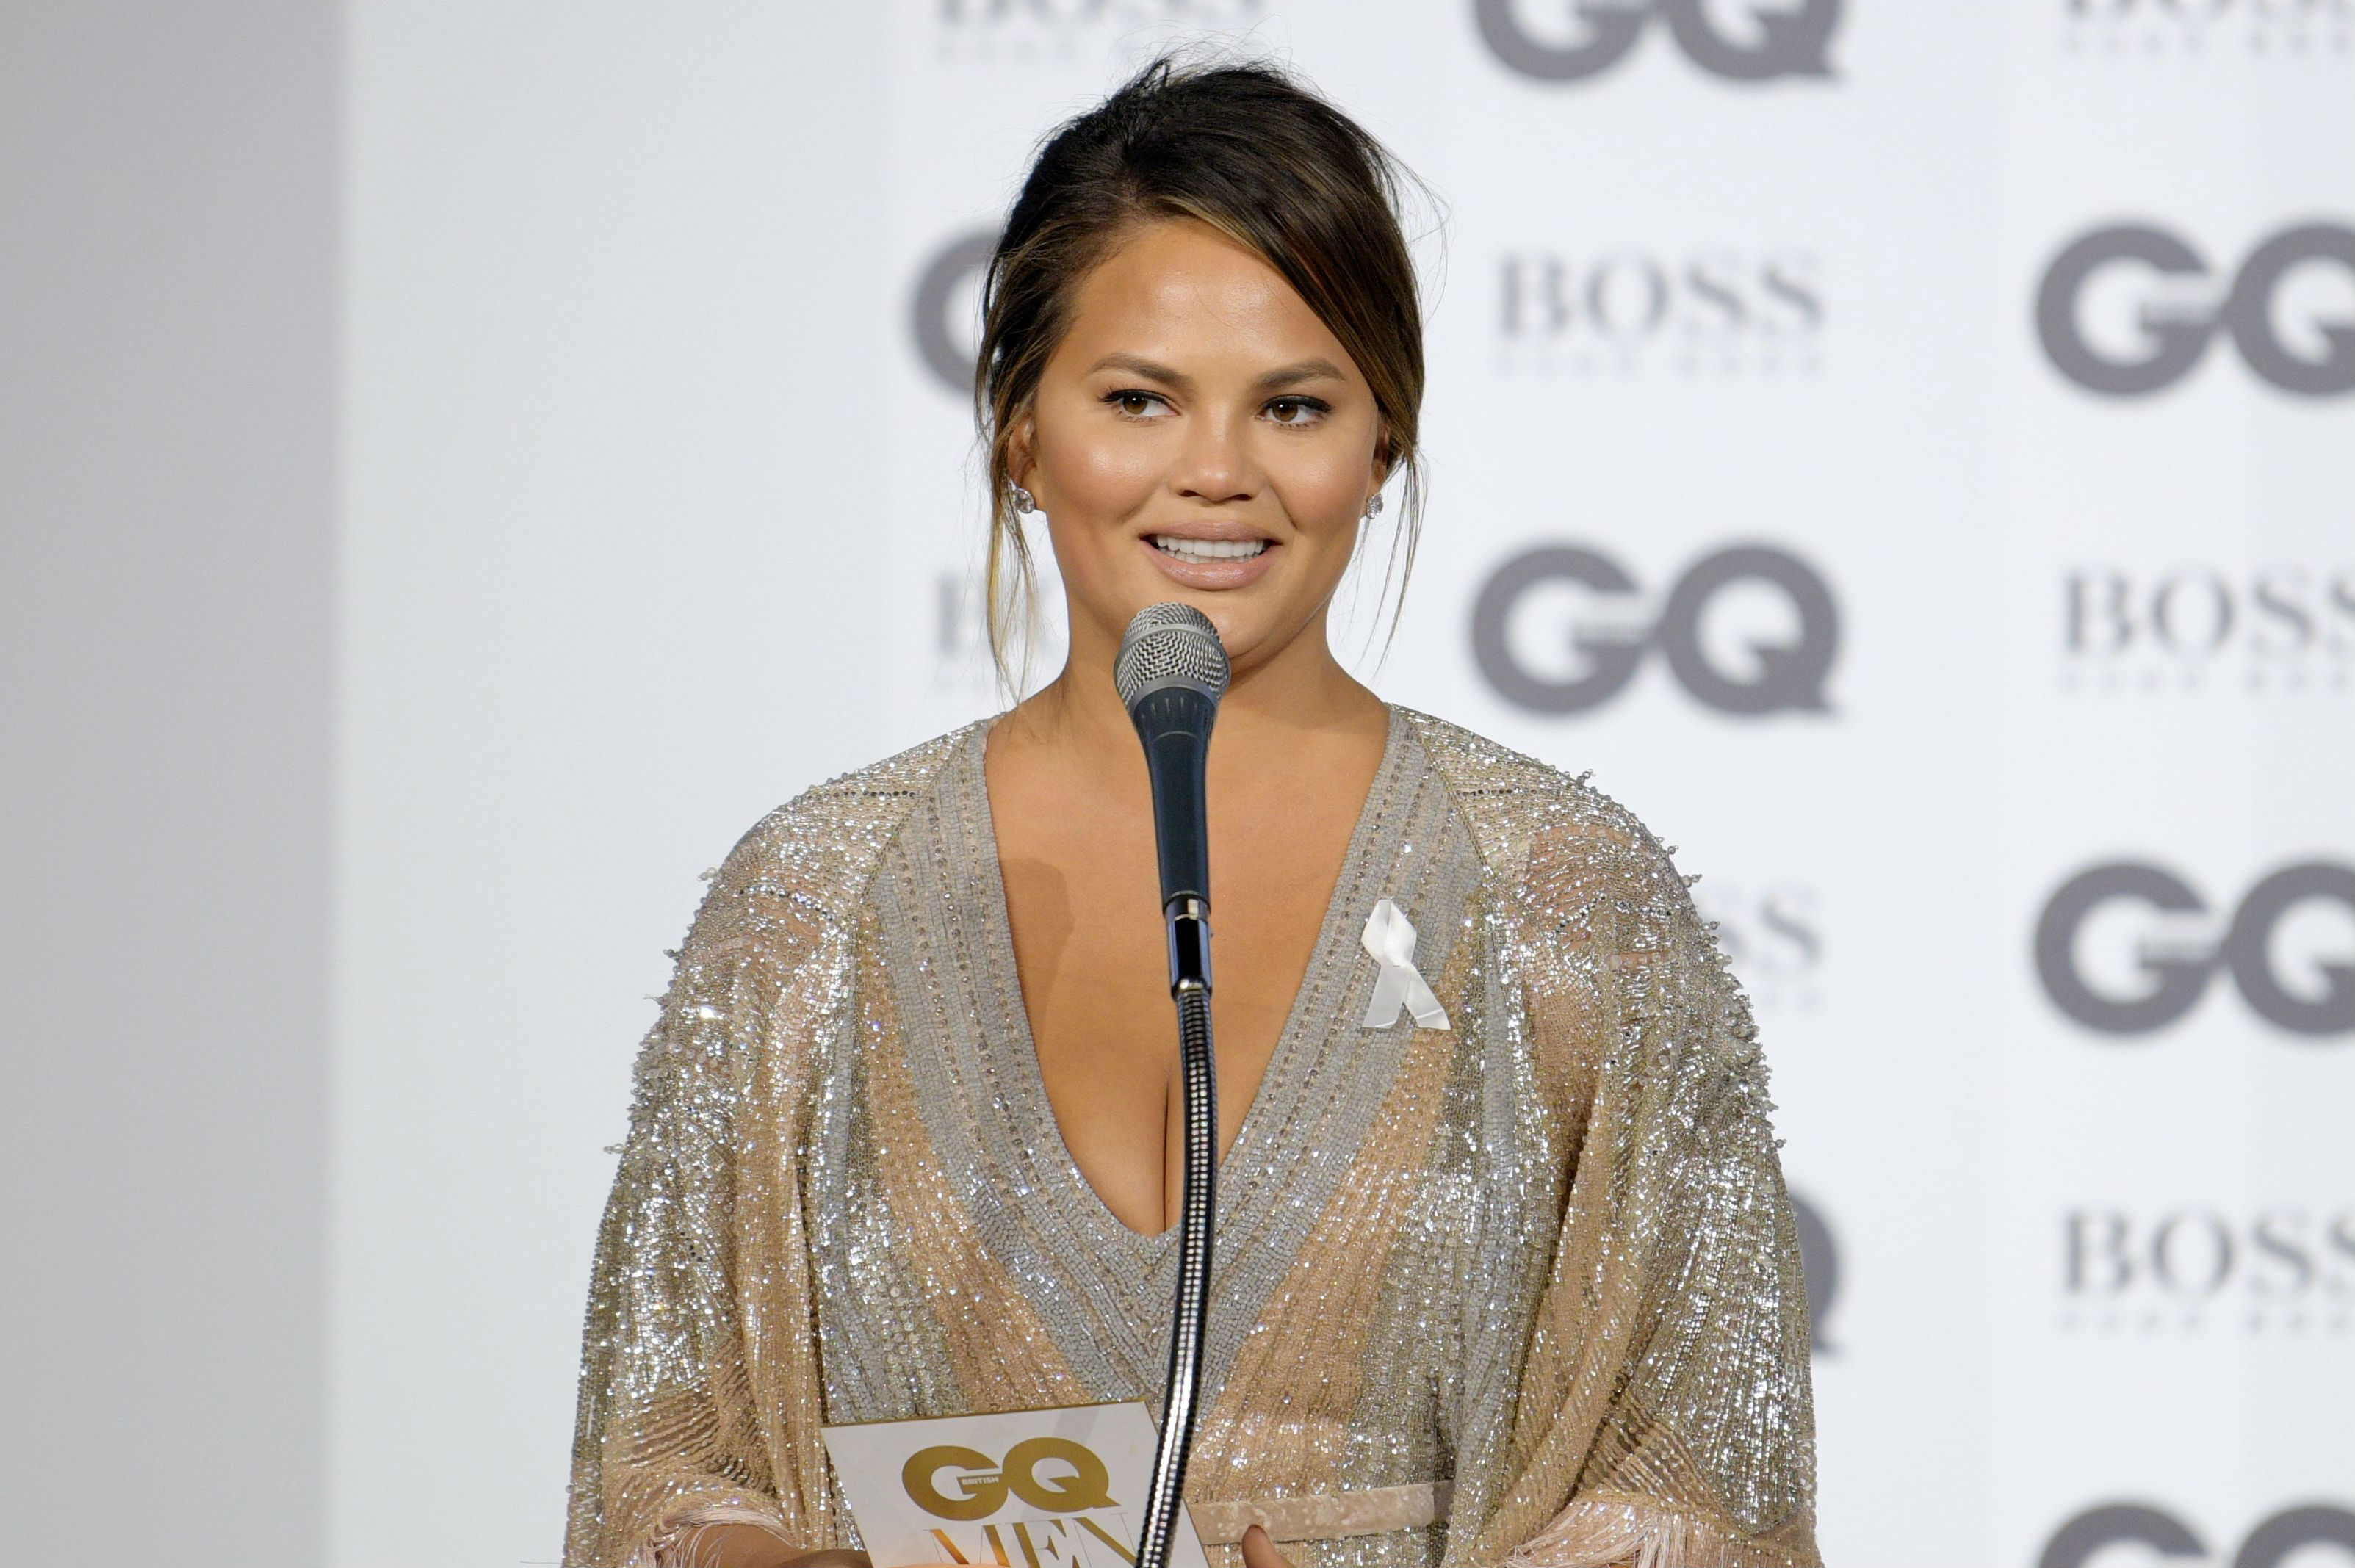 Watch Chrissy Teigen Opens Up About Struggling With Alcohol: I Have to Fix Myself video